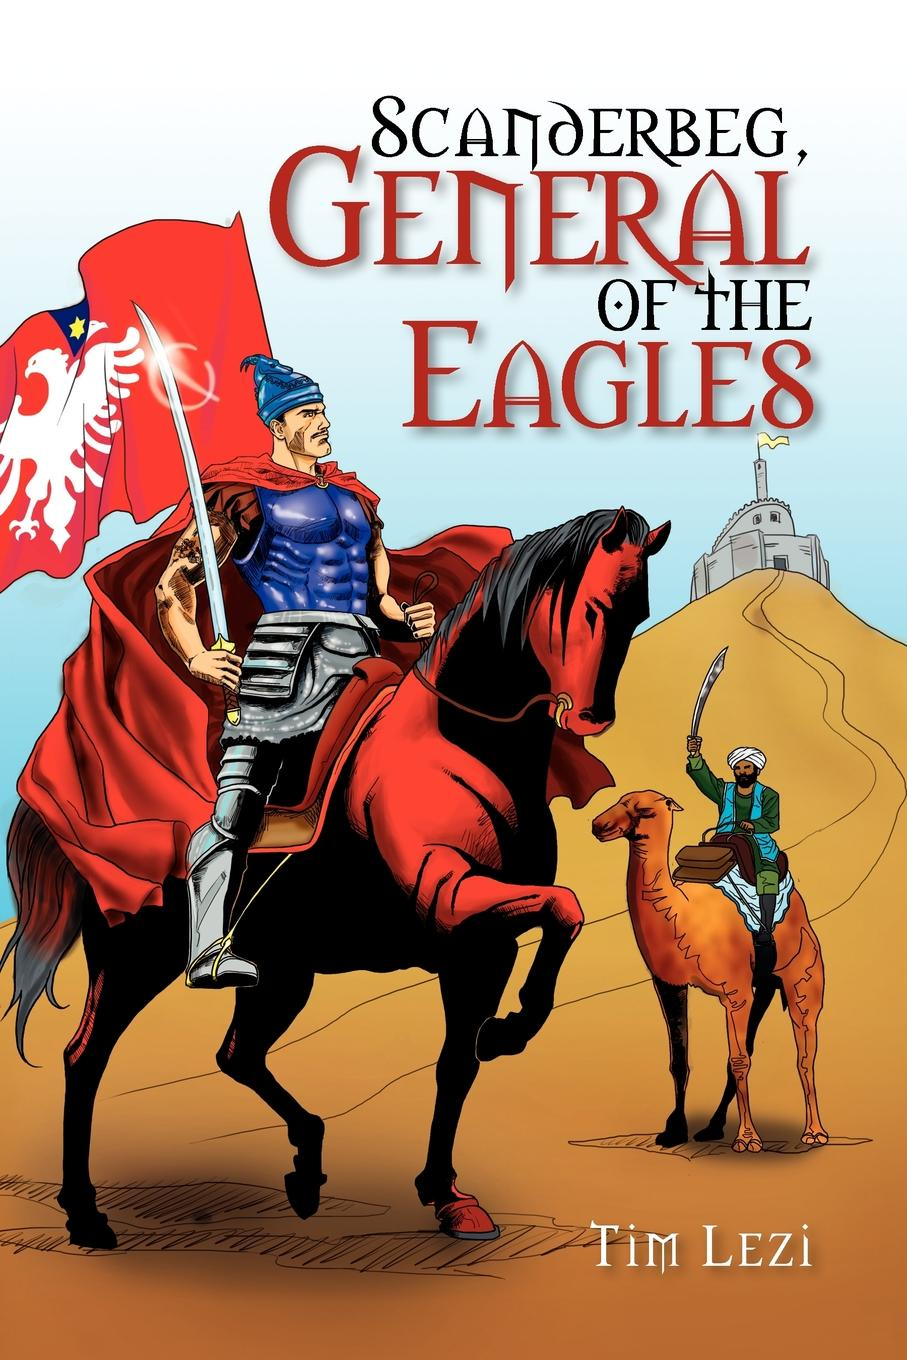 Tim Lezi Scanderbeg, General of the Eagles cody benjamin the eagles notebook